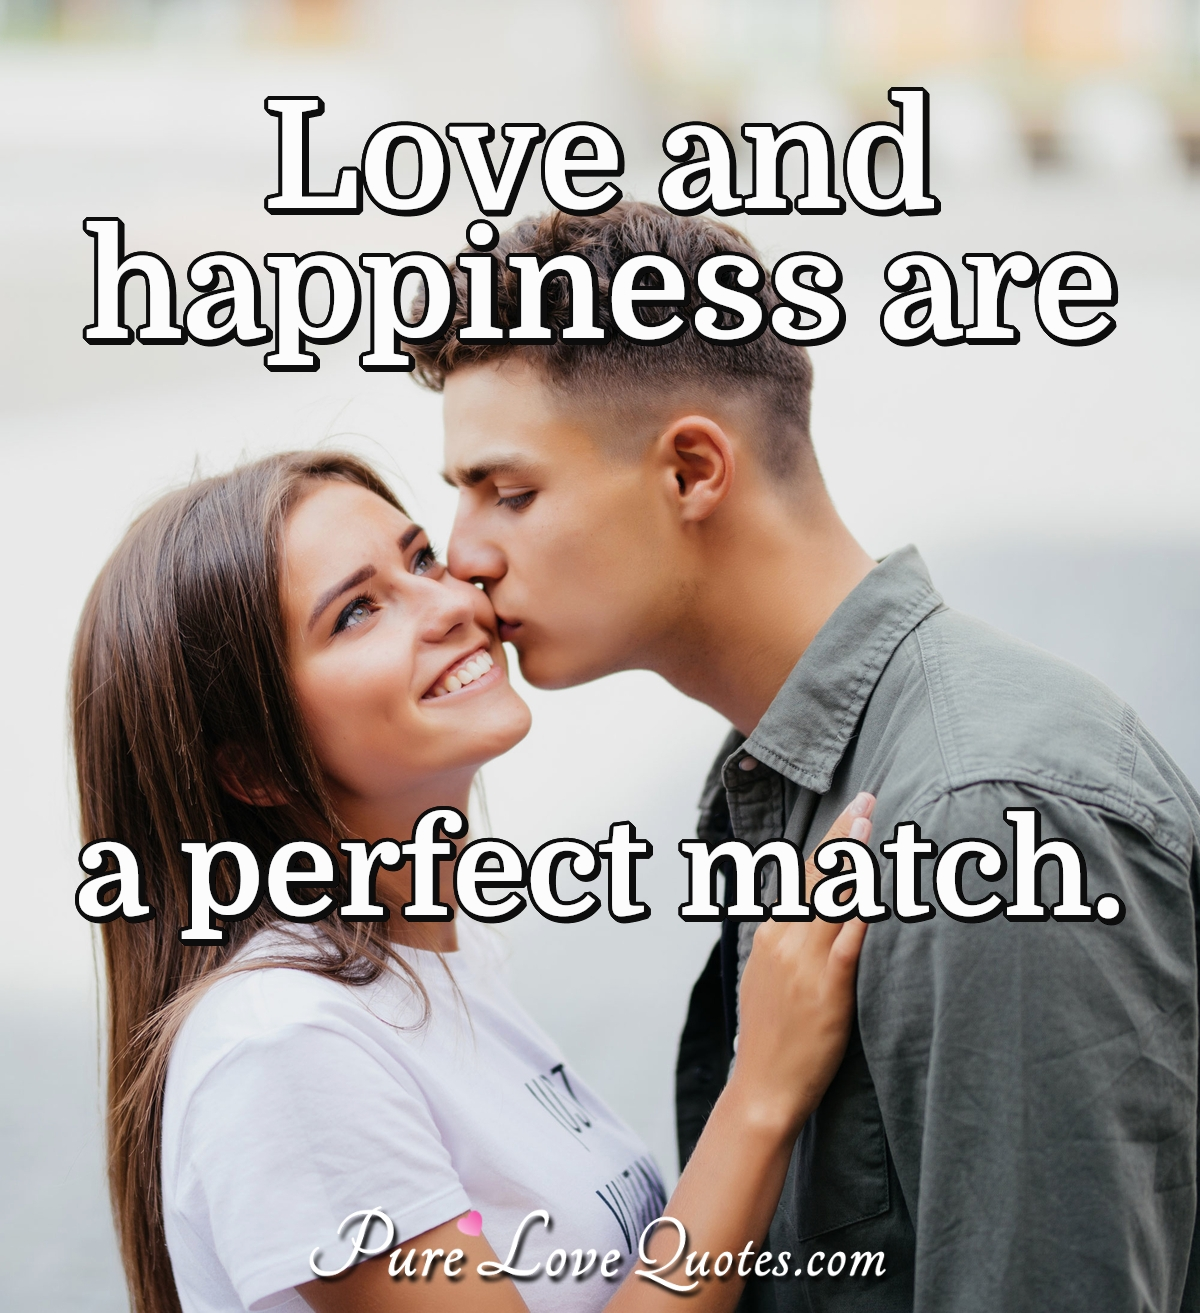 Love and happiness are a perfect match. - PureLoveQuotes.com